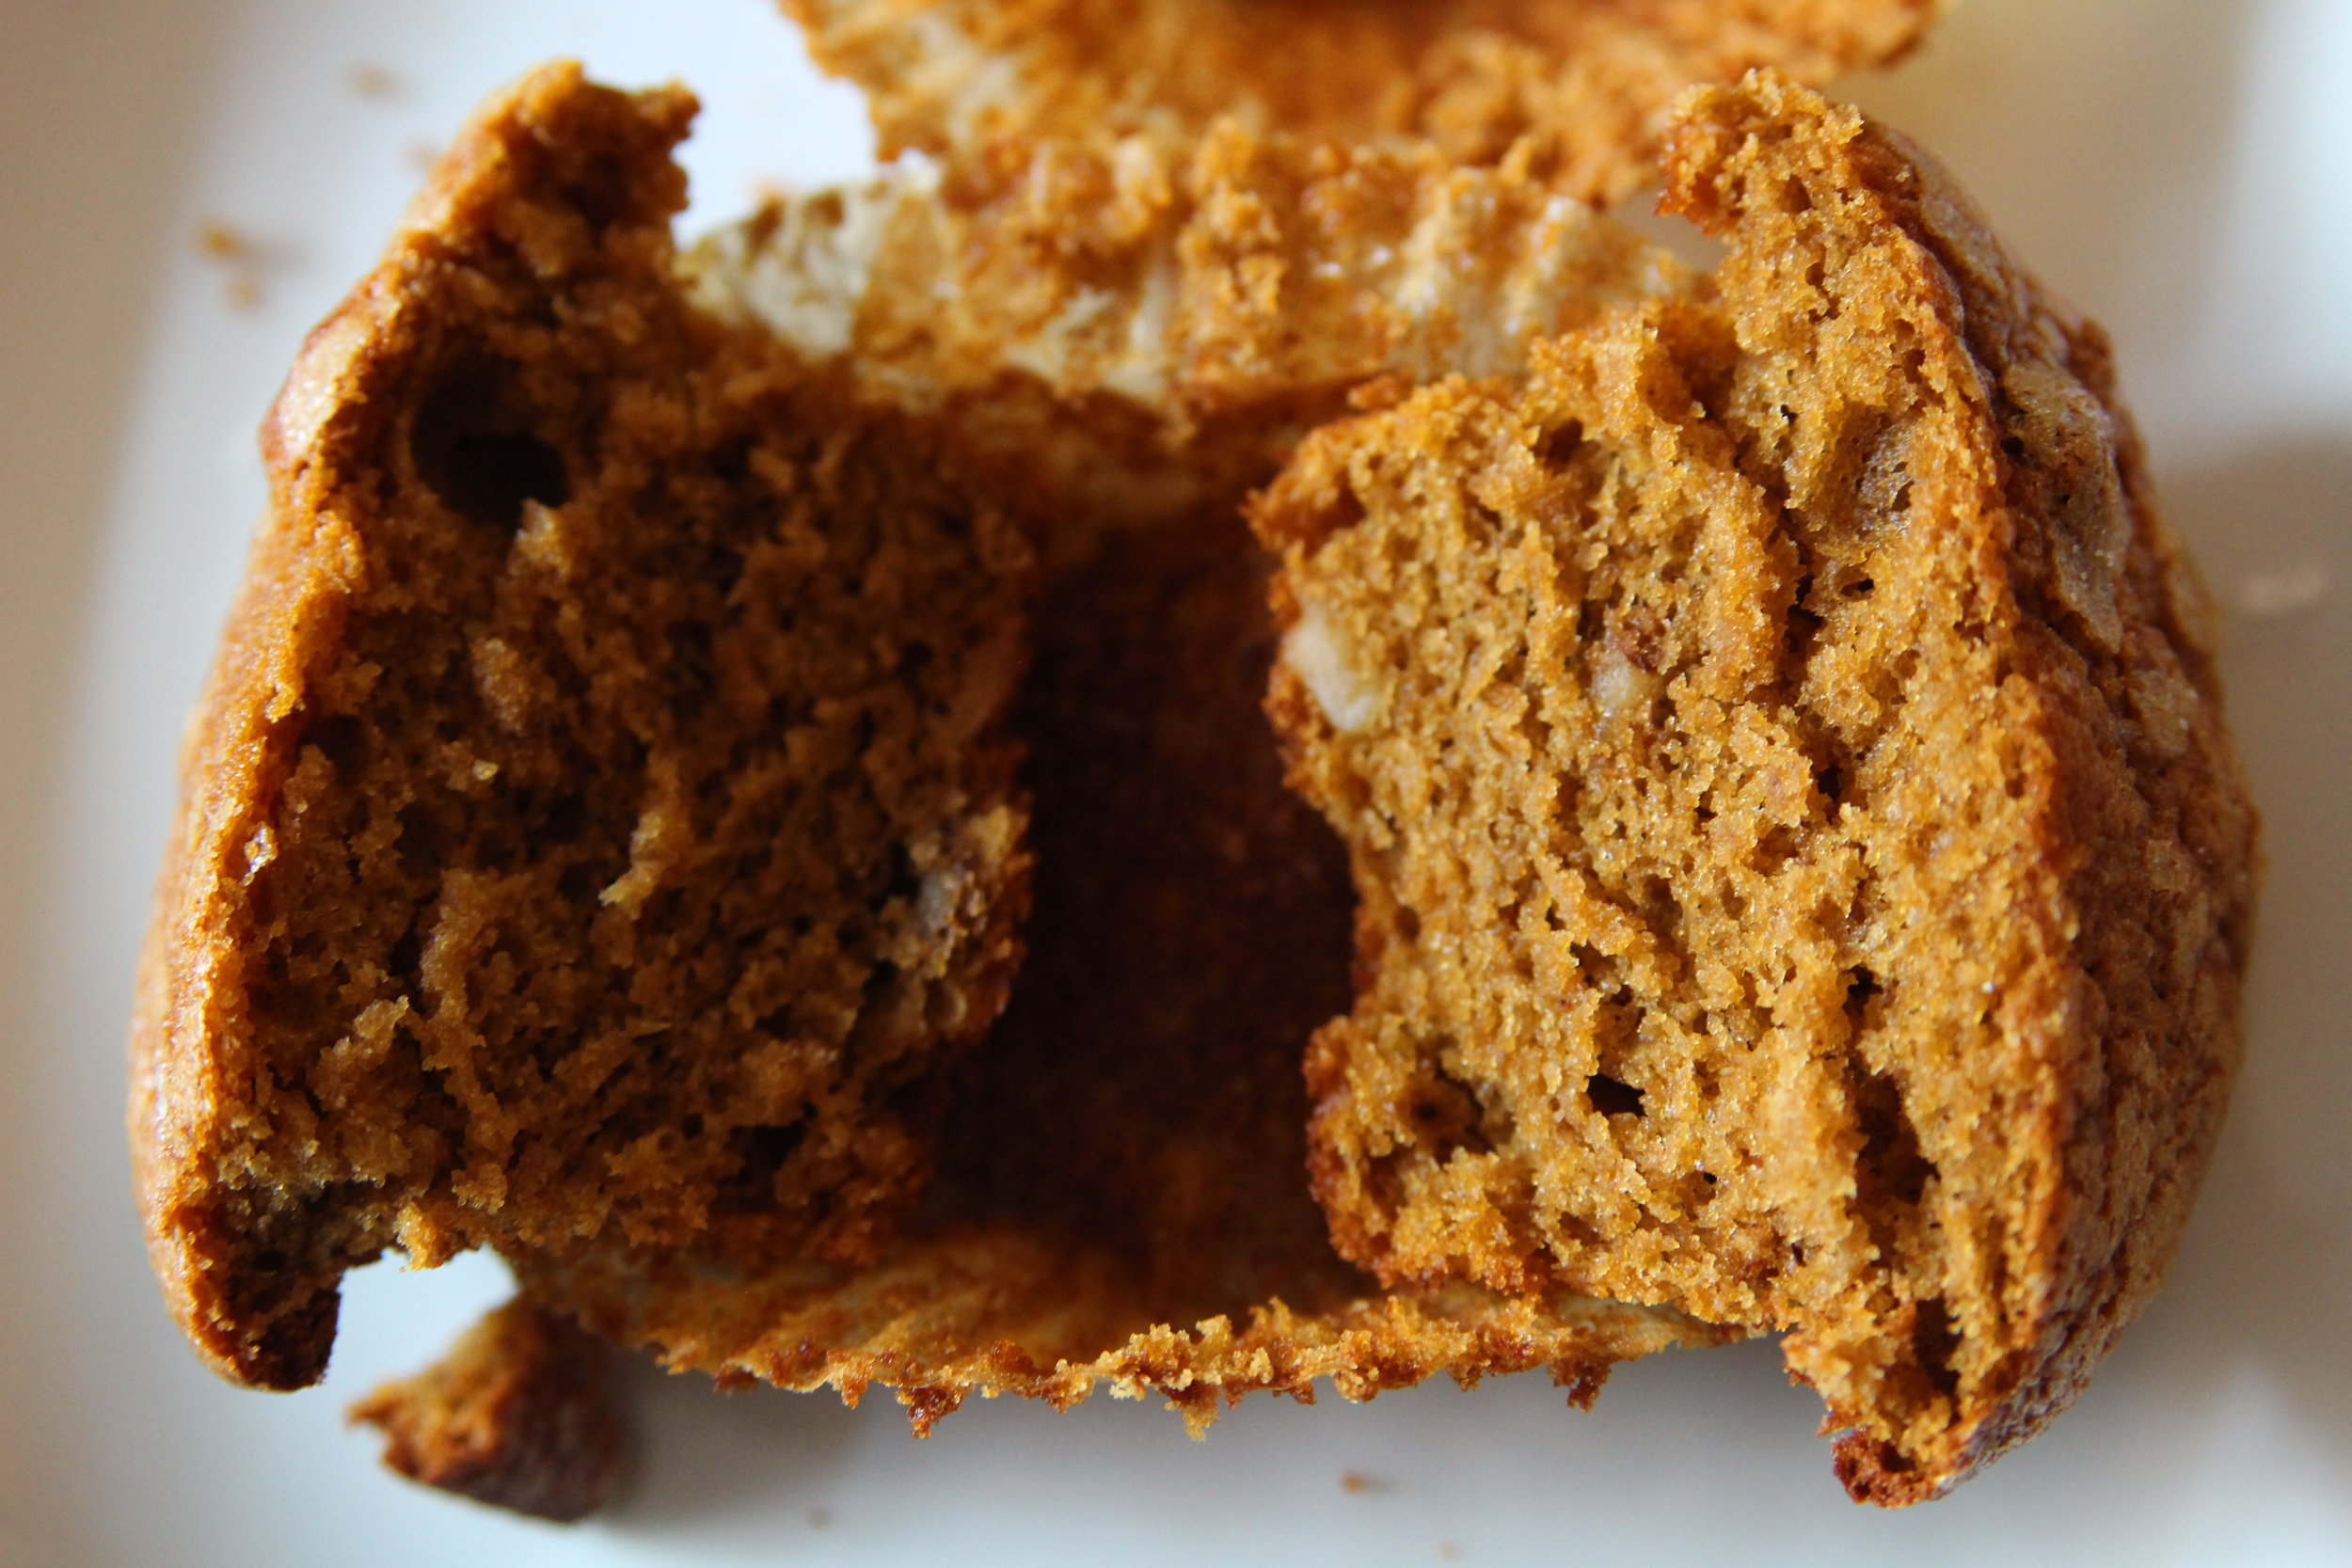 Pumpkin muffin recipe from Joanne Chang's  Flour: Spectacular Recipes from Boston's Flour Bakery + Cafe.